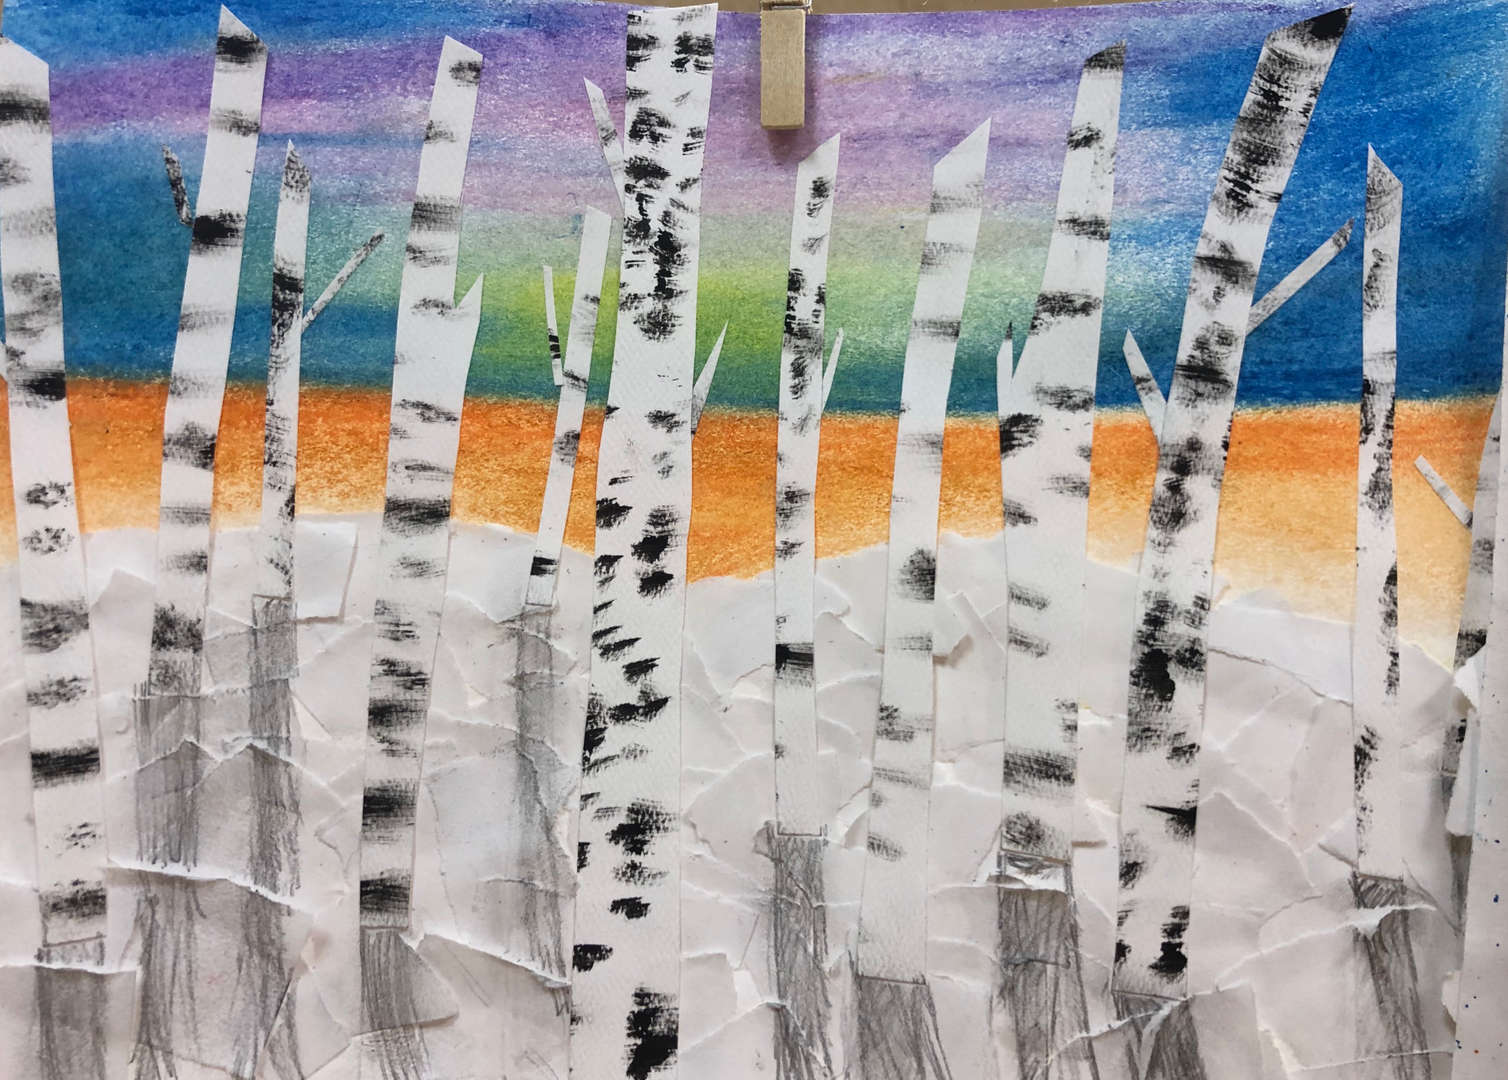 Mixed media birch tree artwork